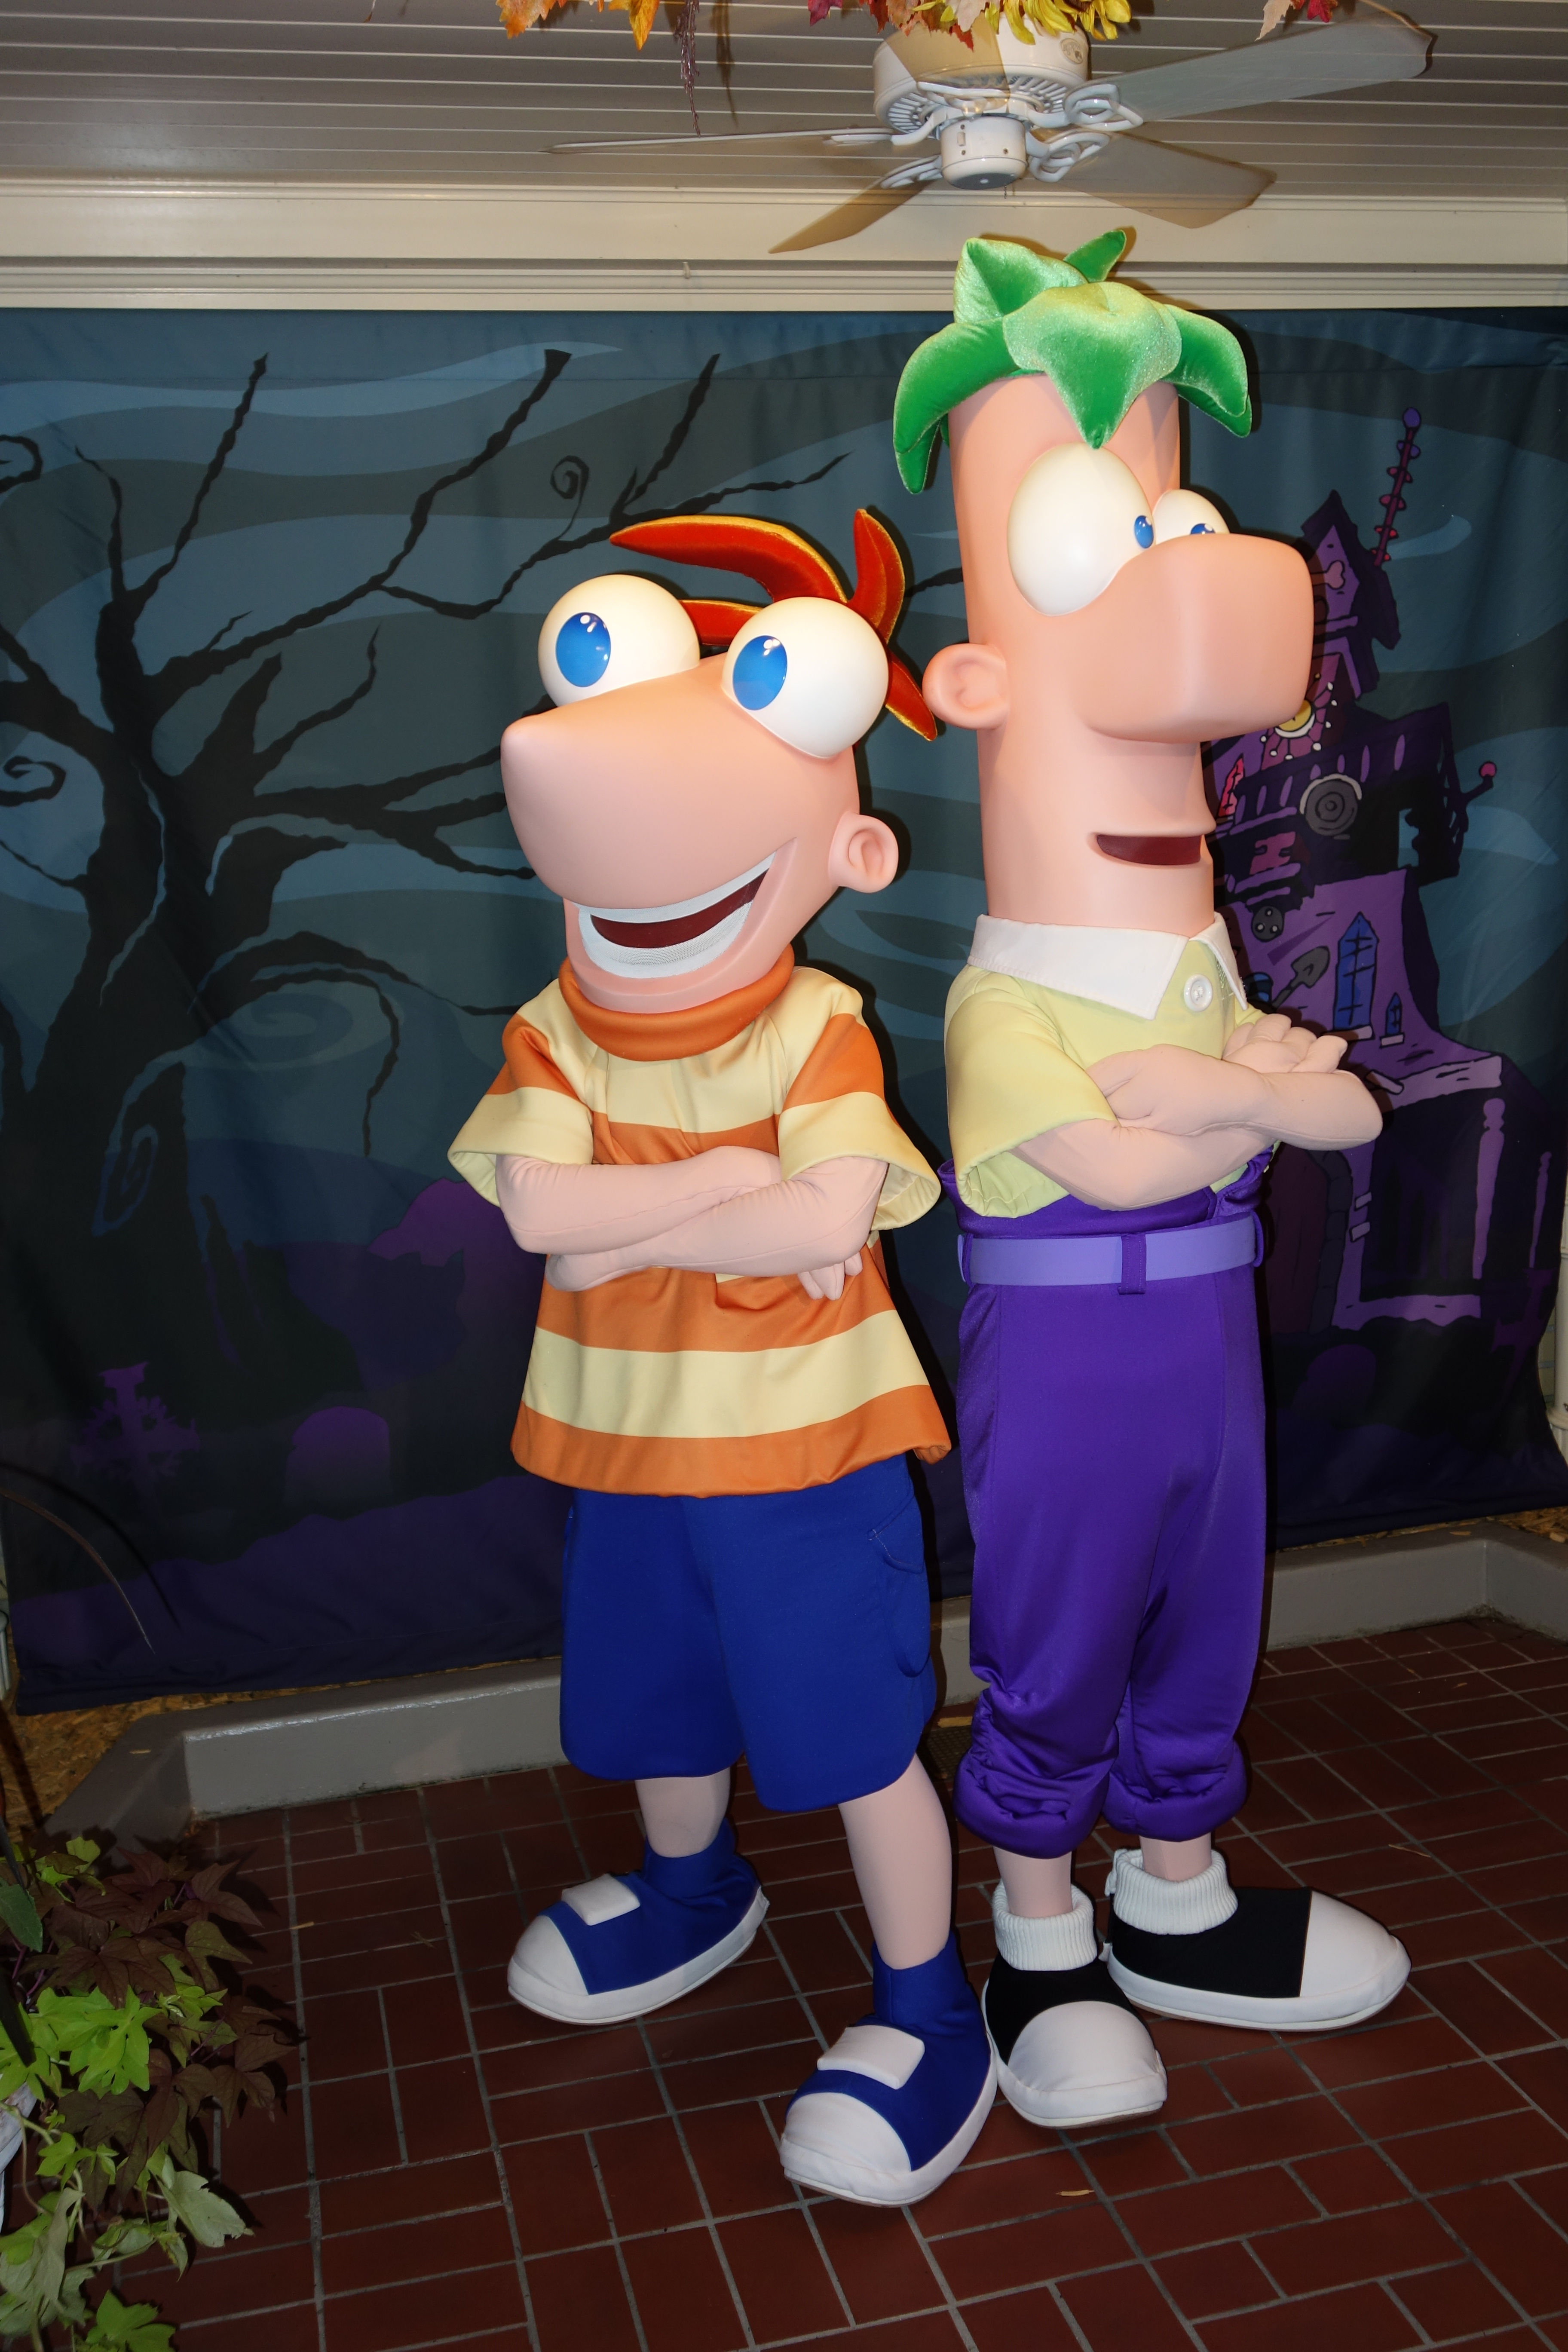 phineas and ferb – hollywood studios | kennythepirate's unofficial